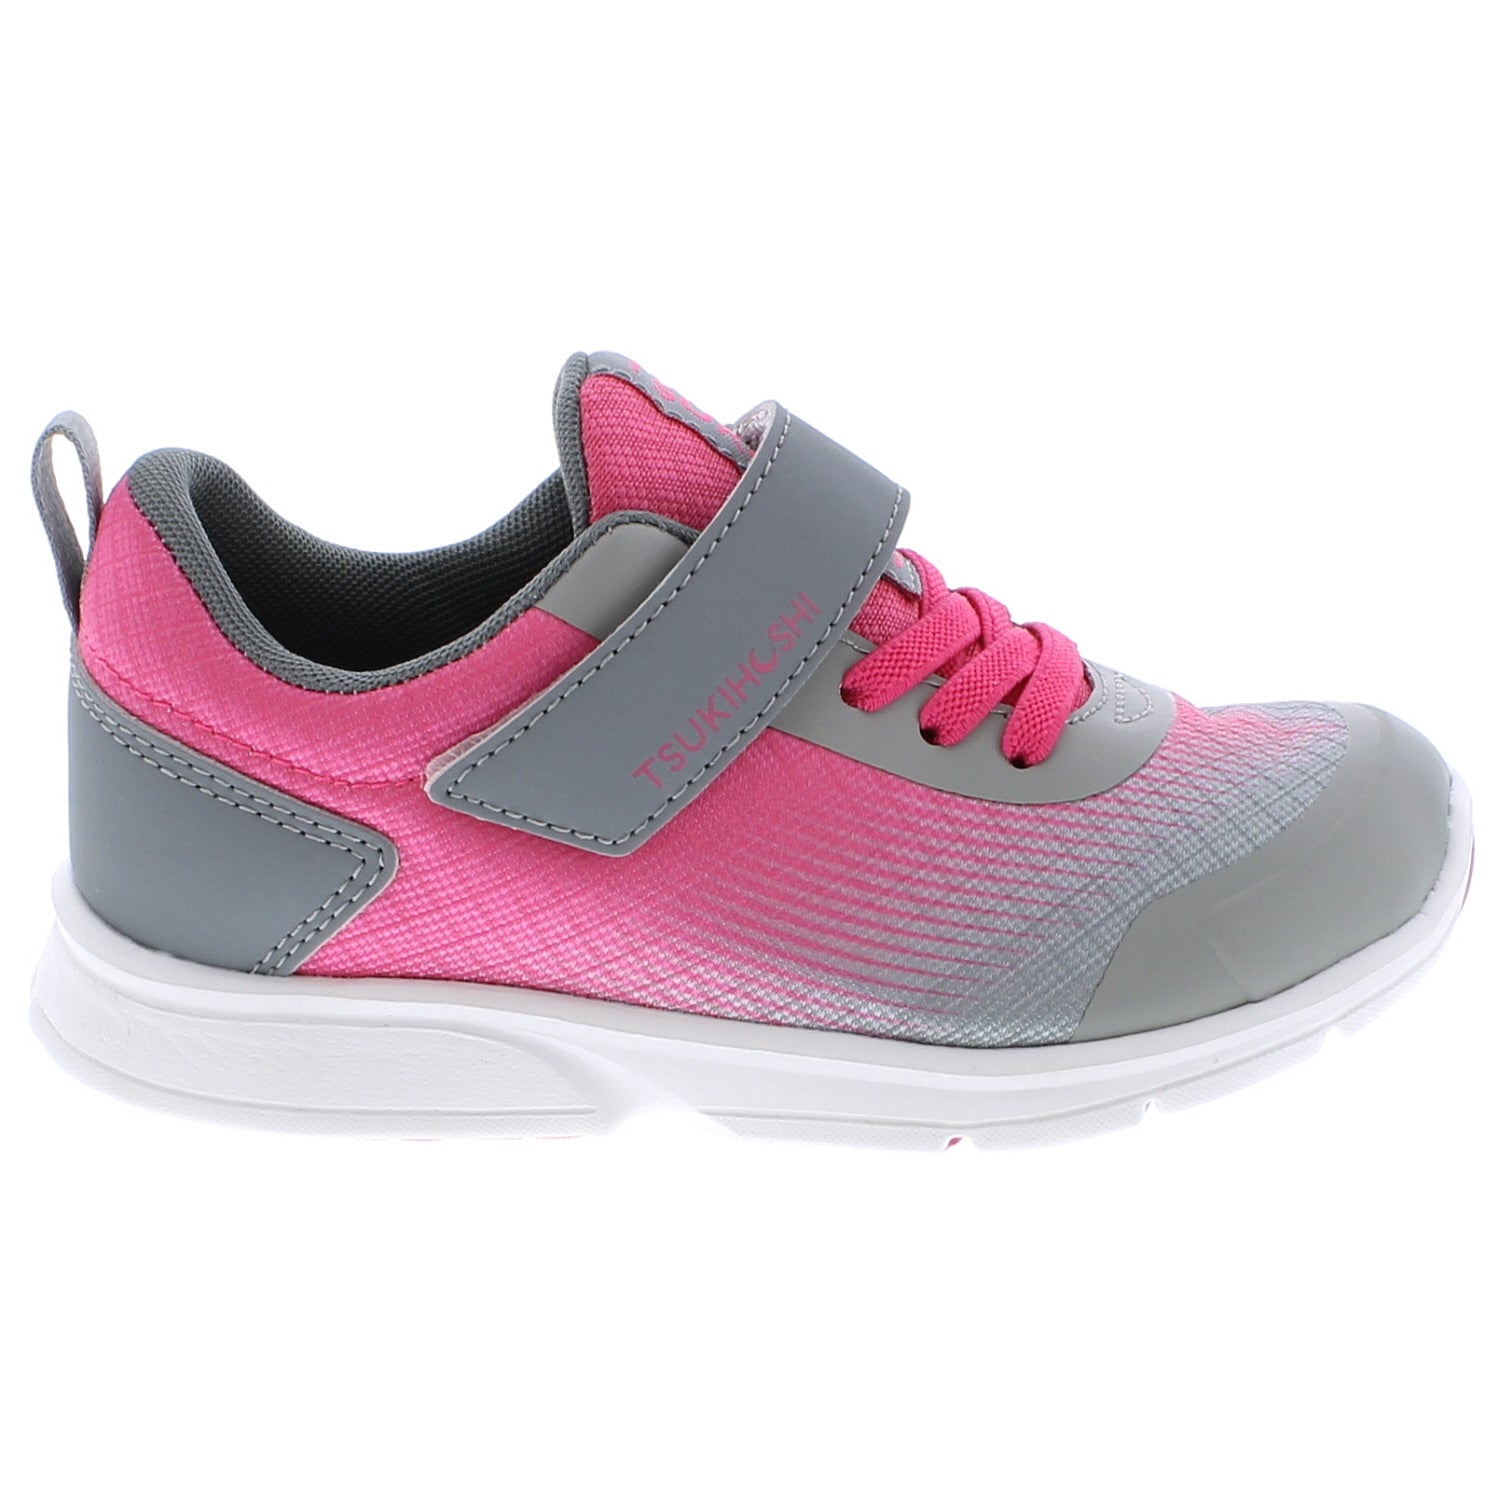 Turbo - Fuchsia / Gray by Tsukihoshi - Ponseti's Shoes